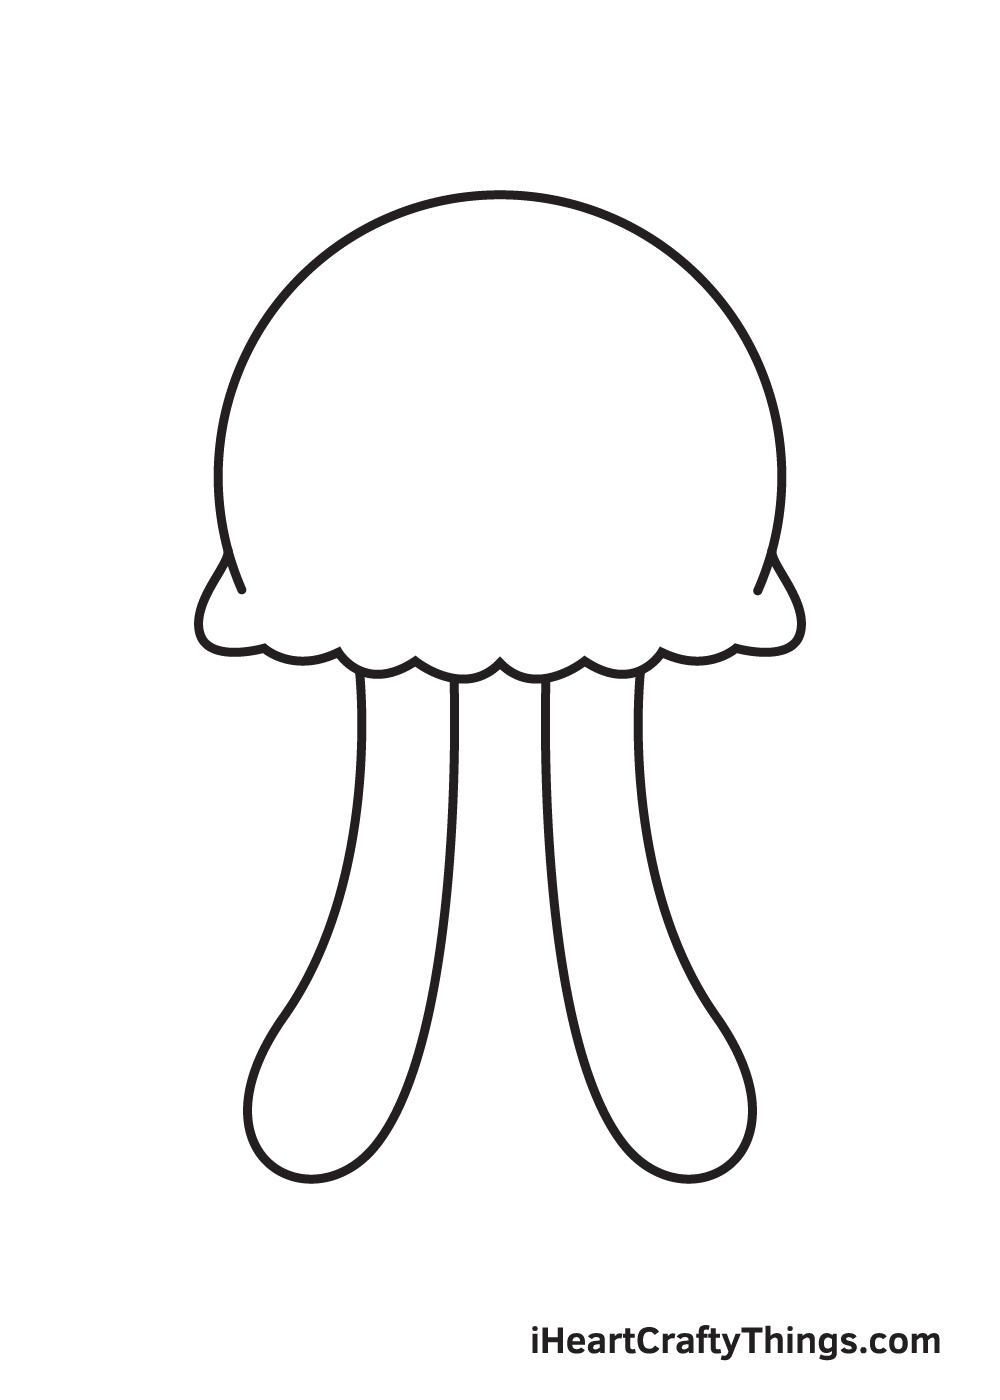 jellyfish drawing step 4